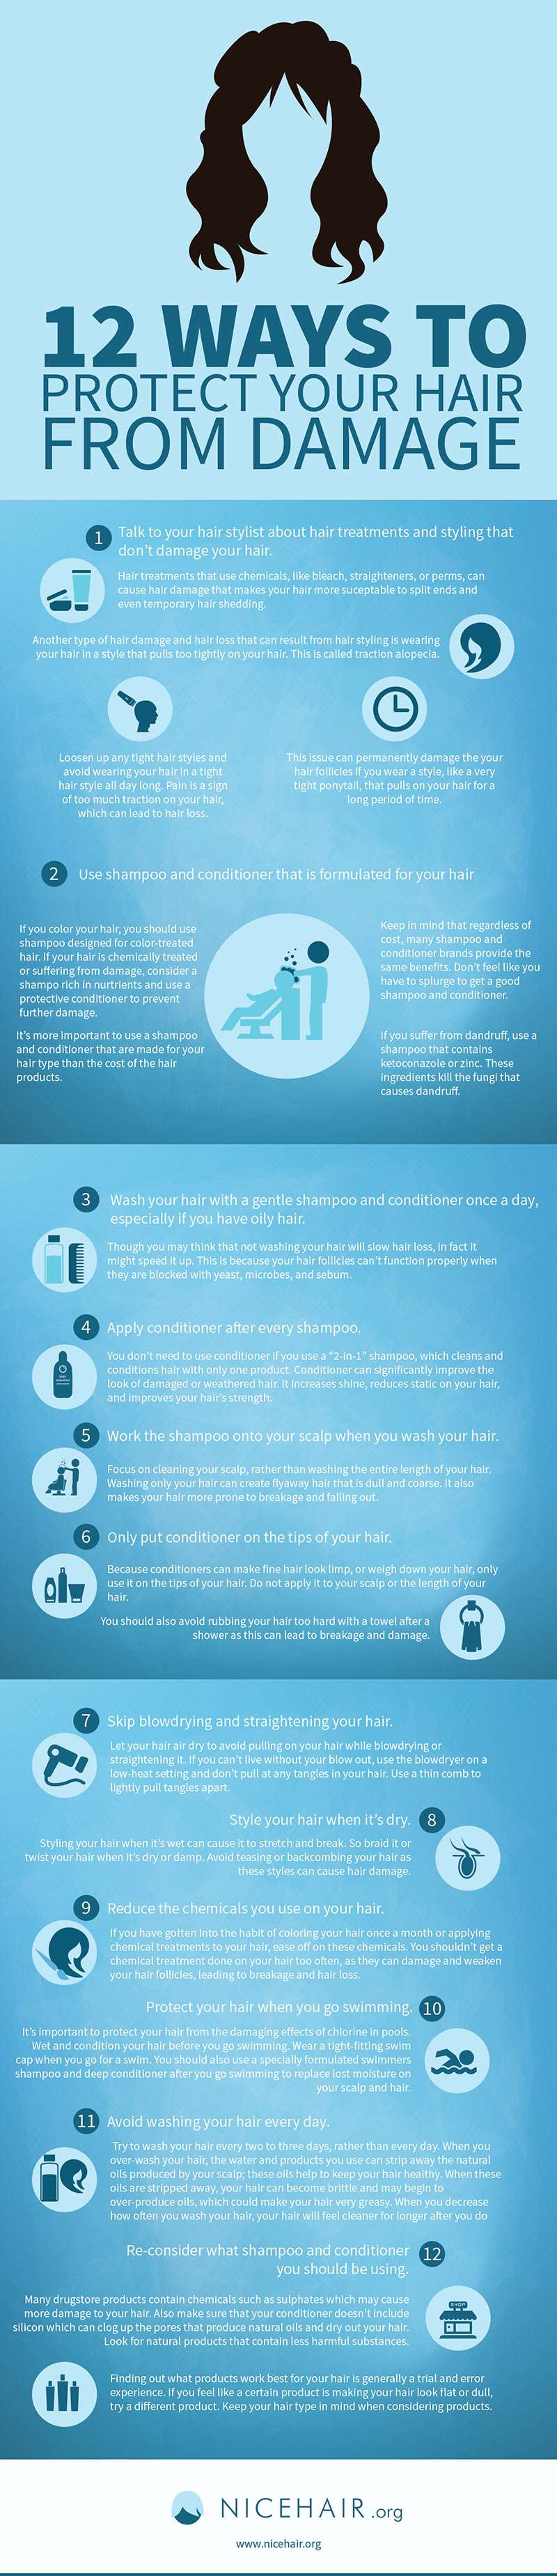 Infographic: 12 Ways to Protect Your Hair From Damage